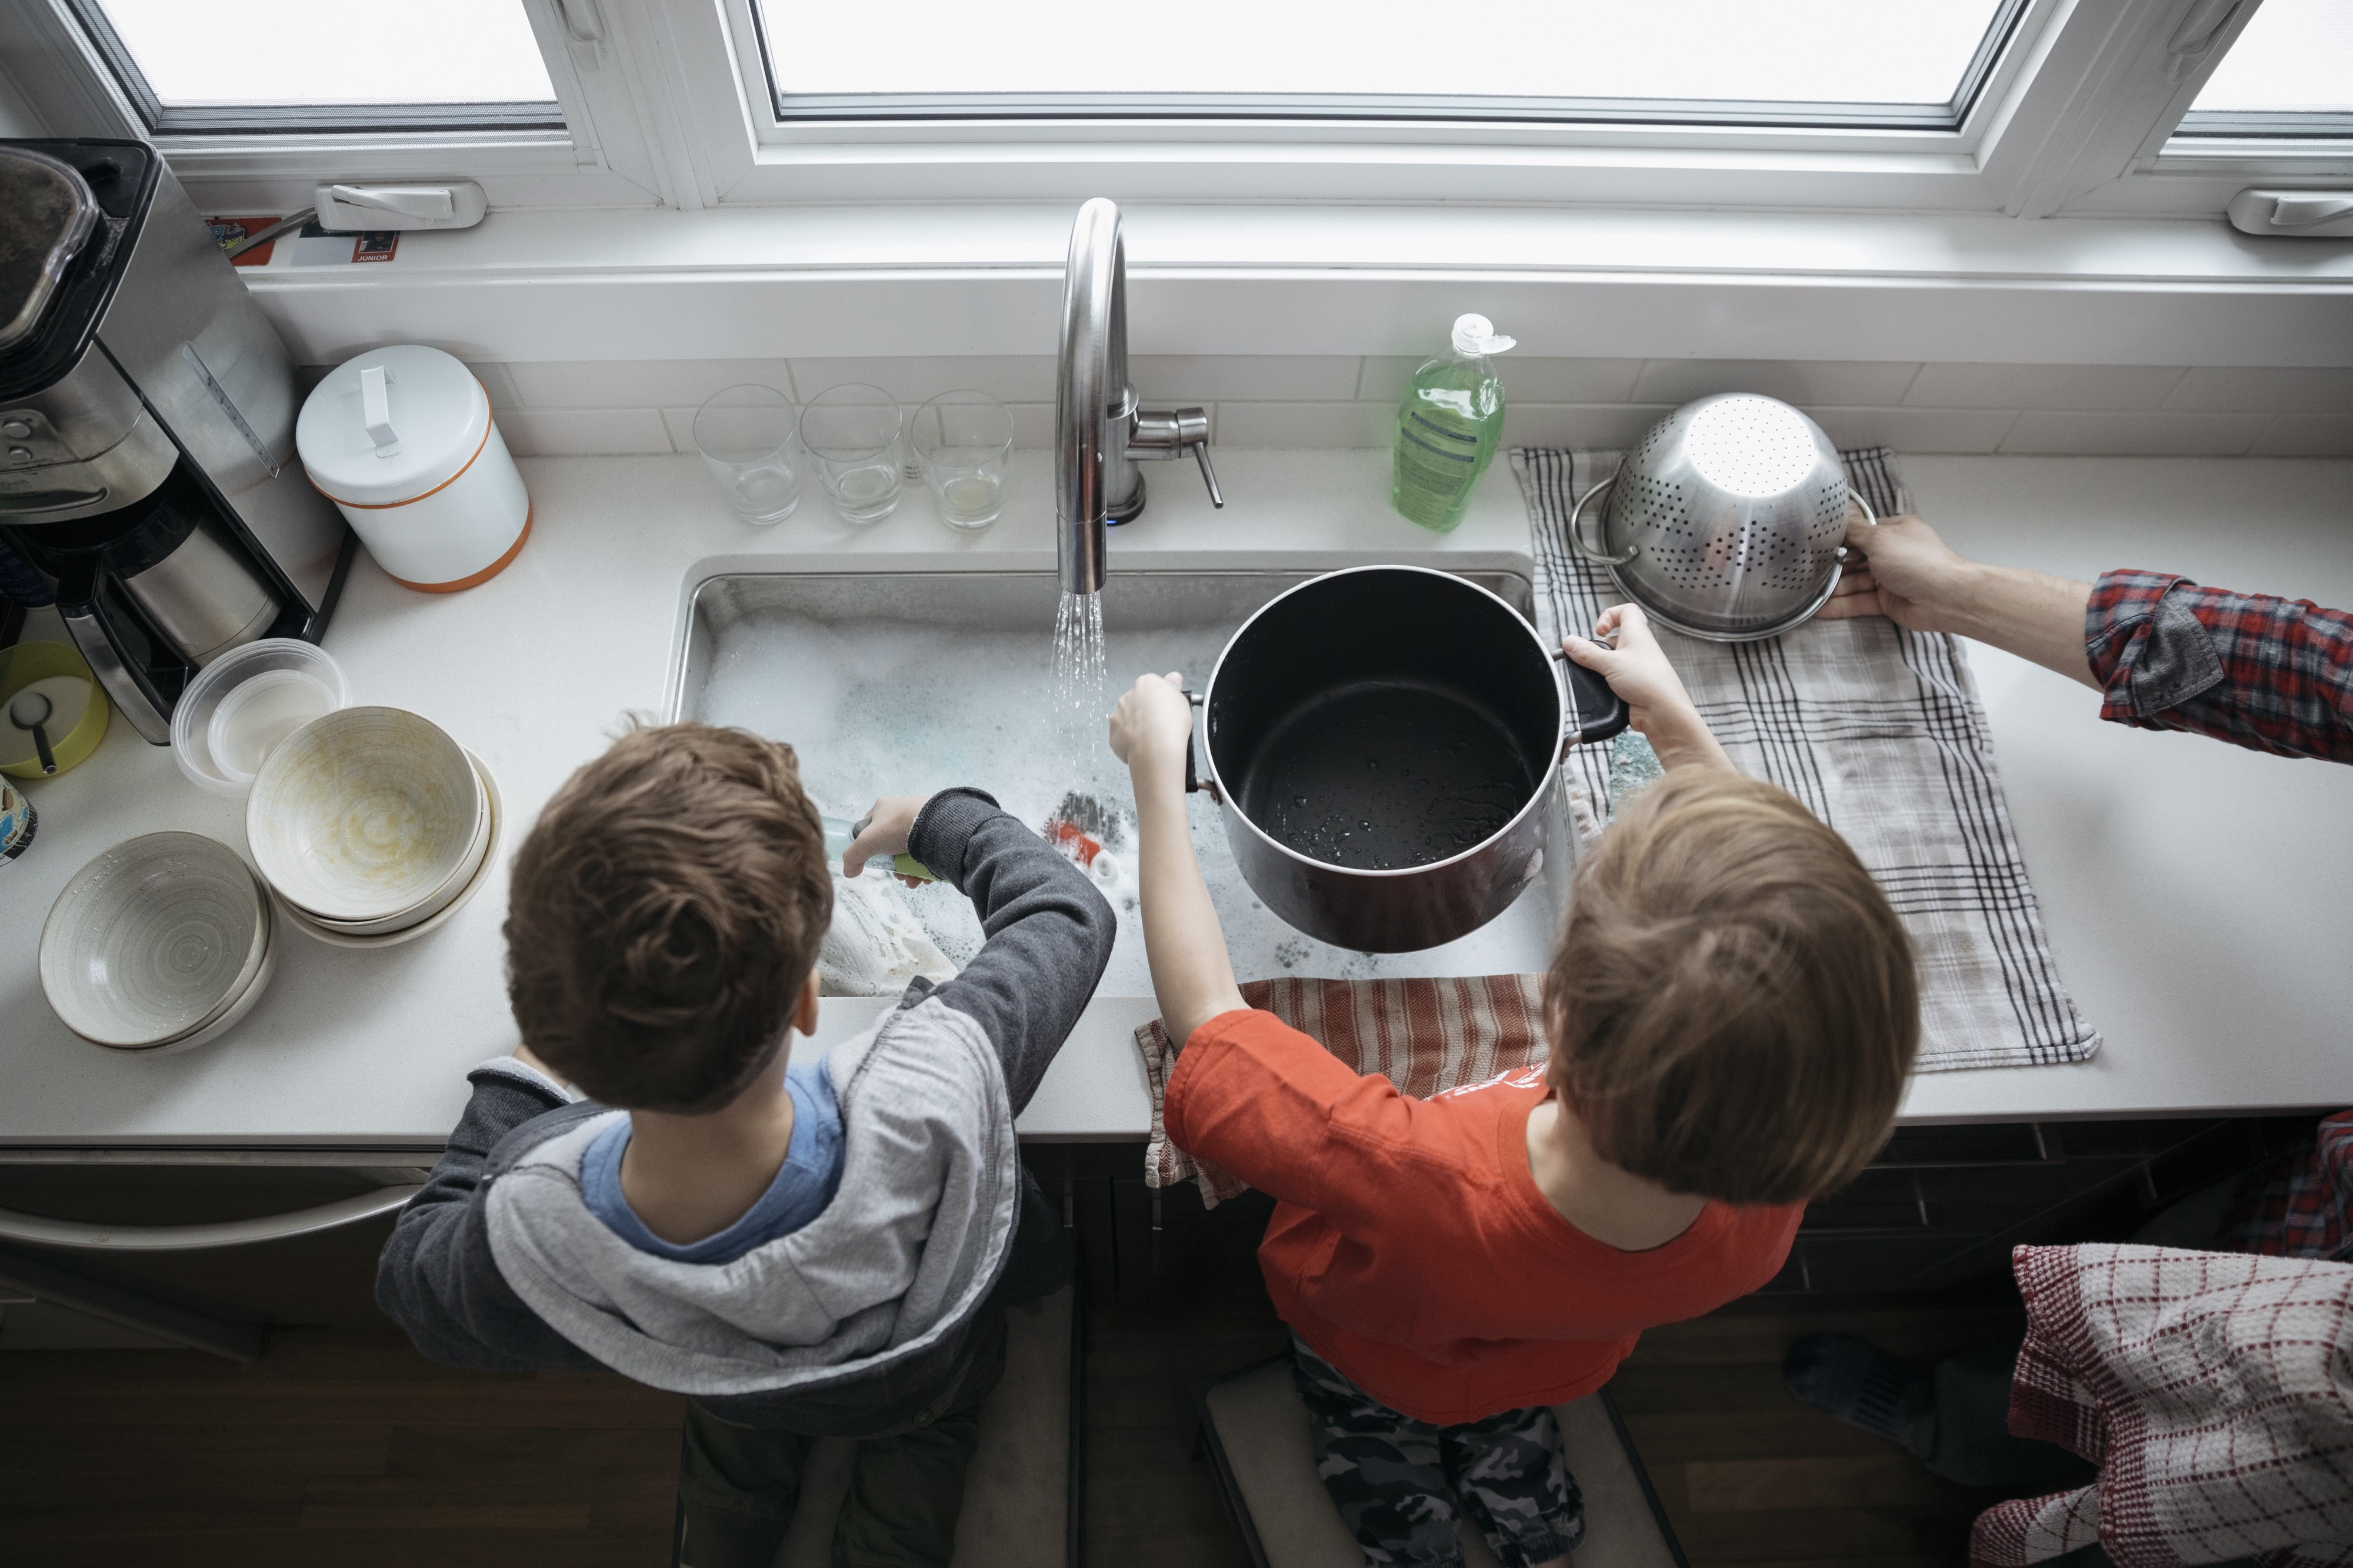 Overhead view of brothers doing dishes at the kitchen sink.